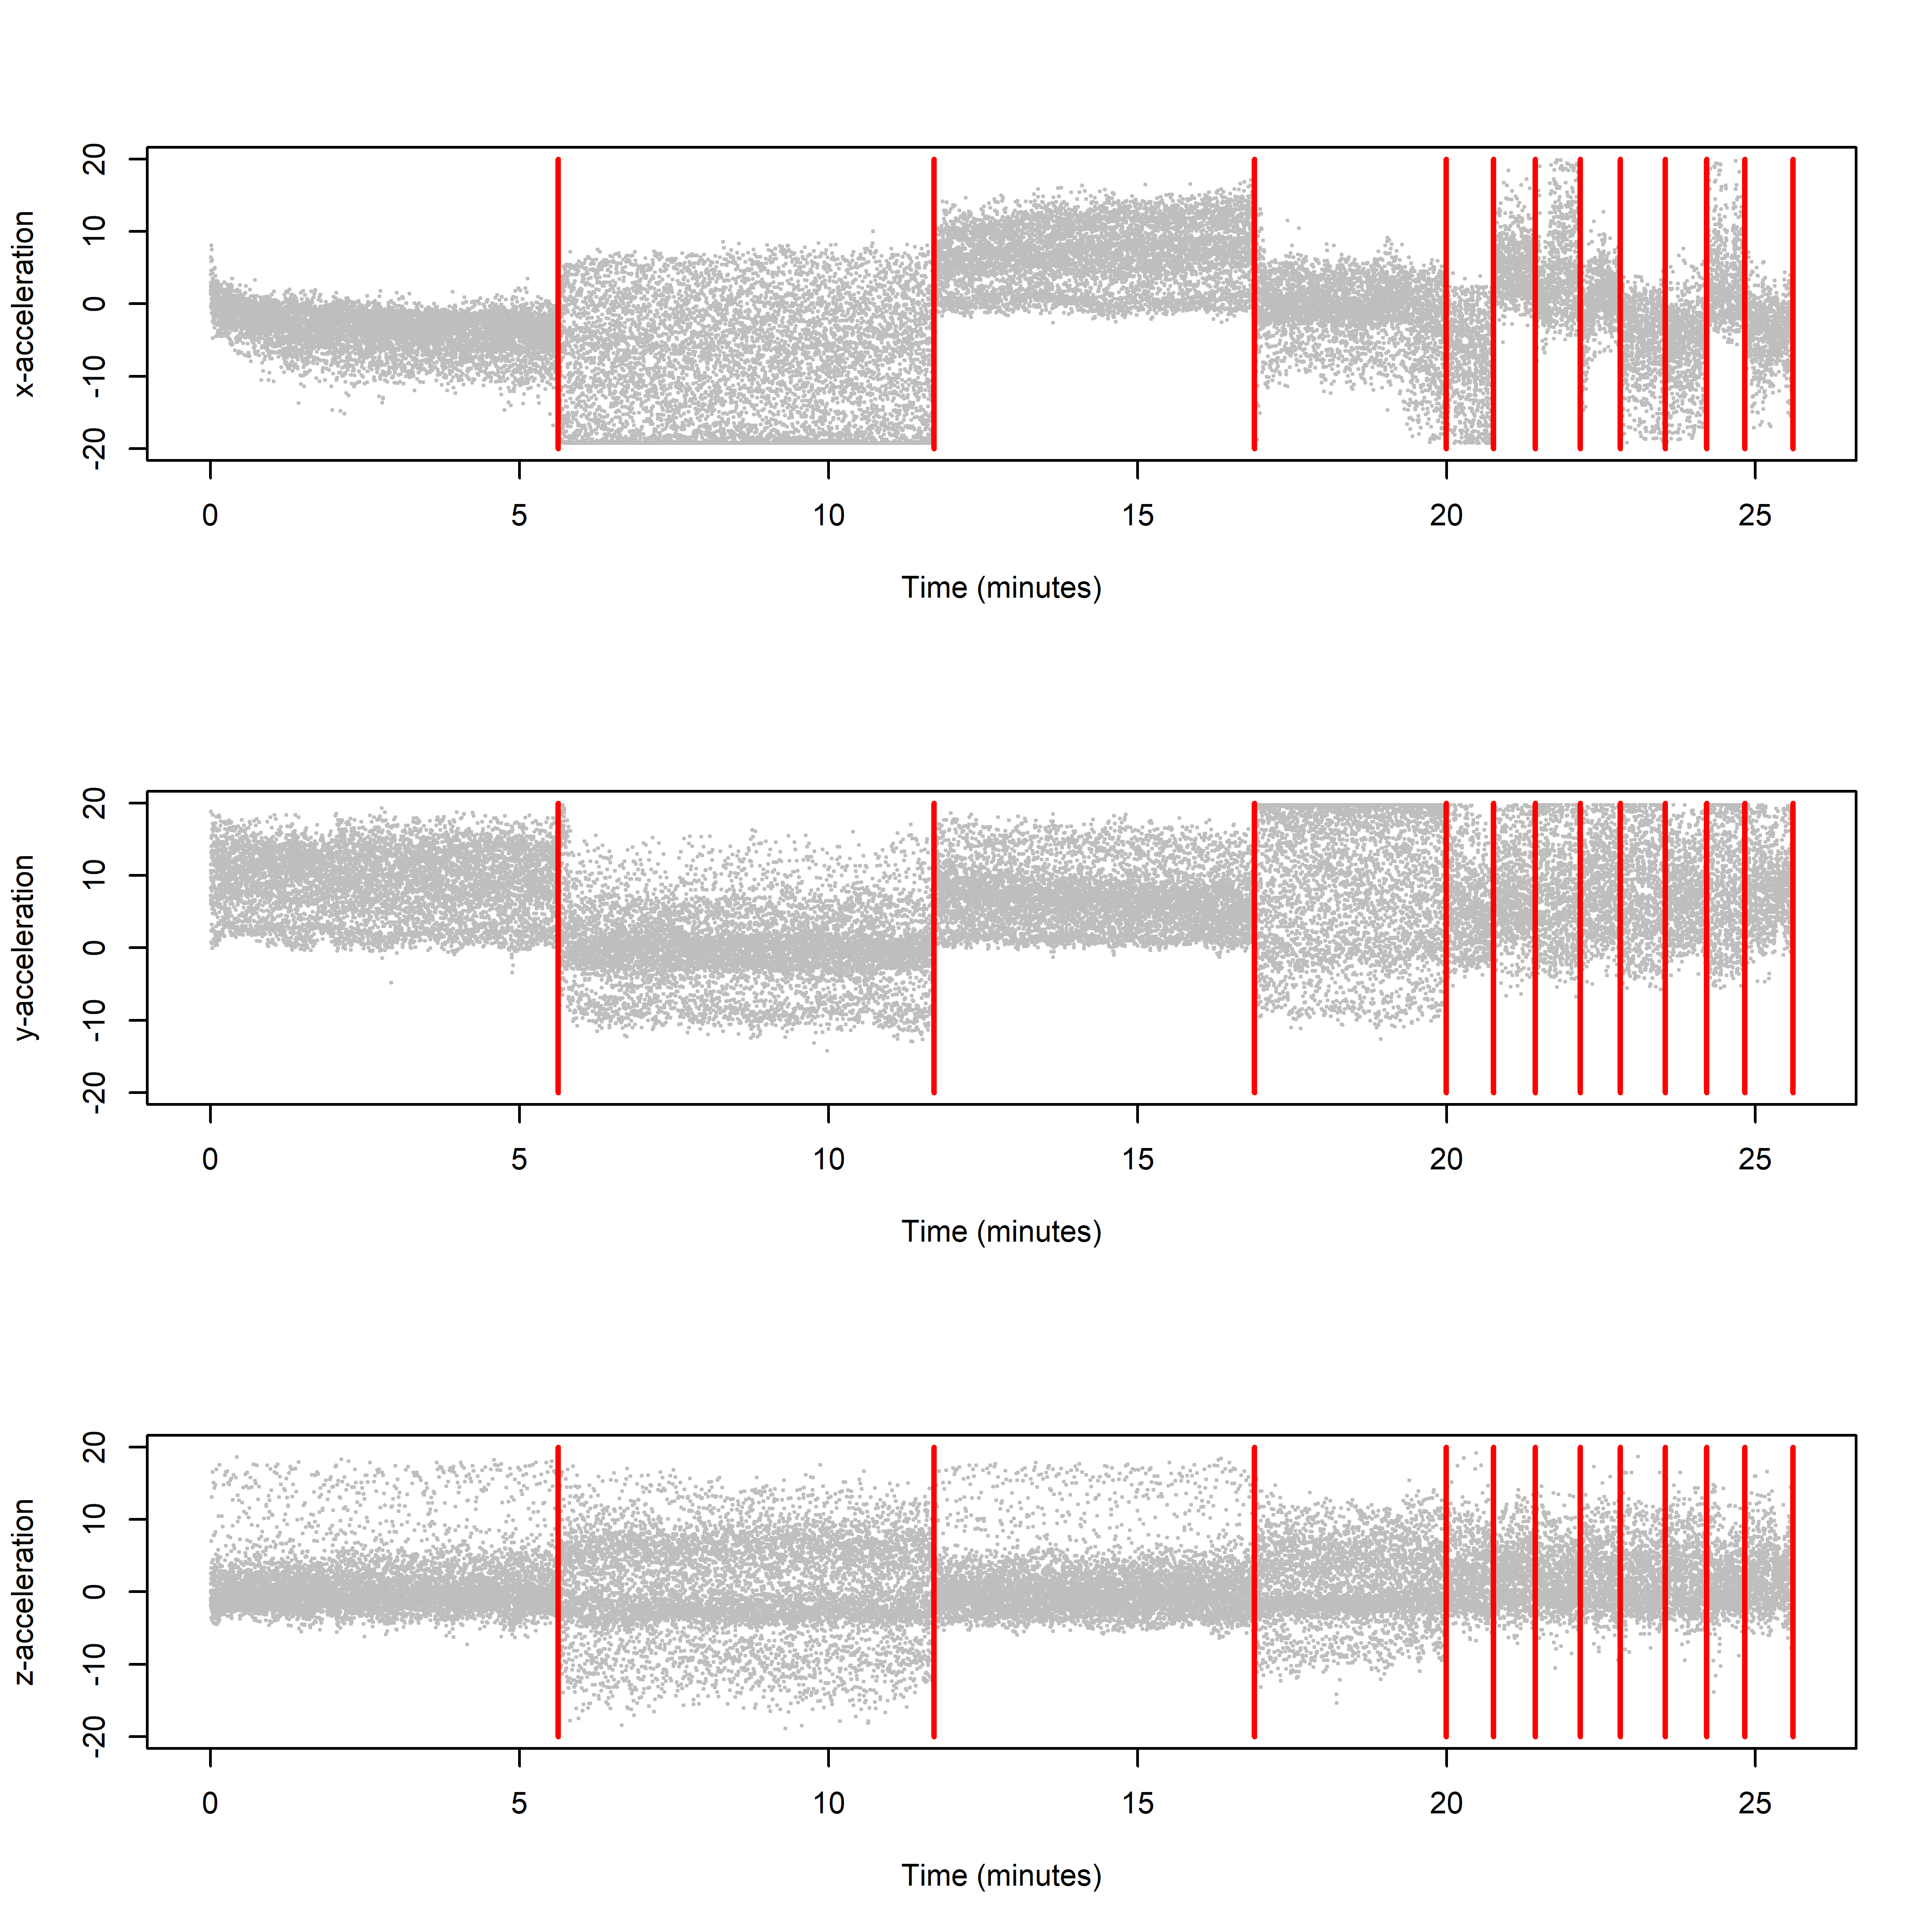 The gray dots show accelerometer observations for an arbitrary users. The red lines show when the user changes activity.